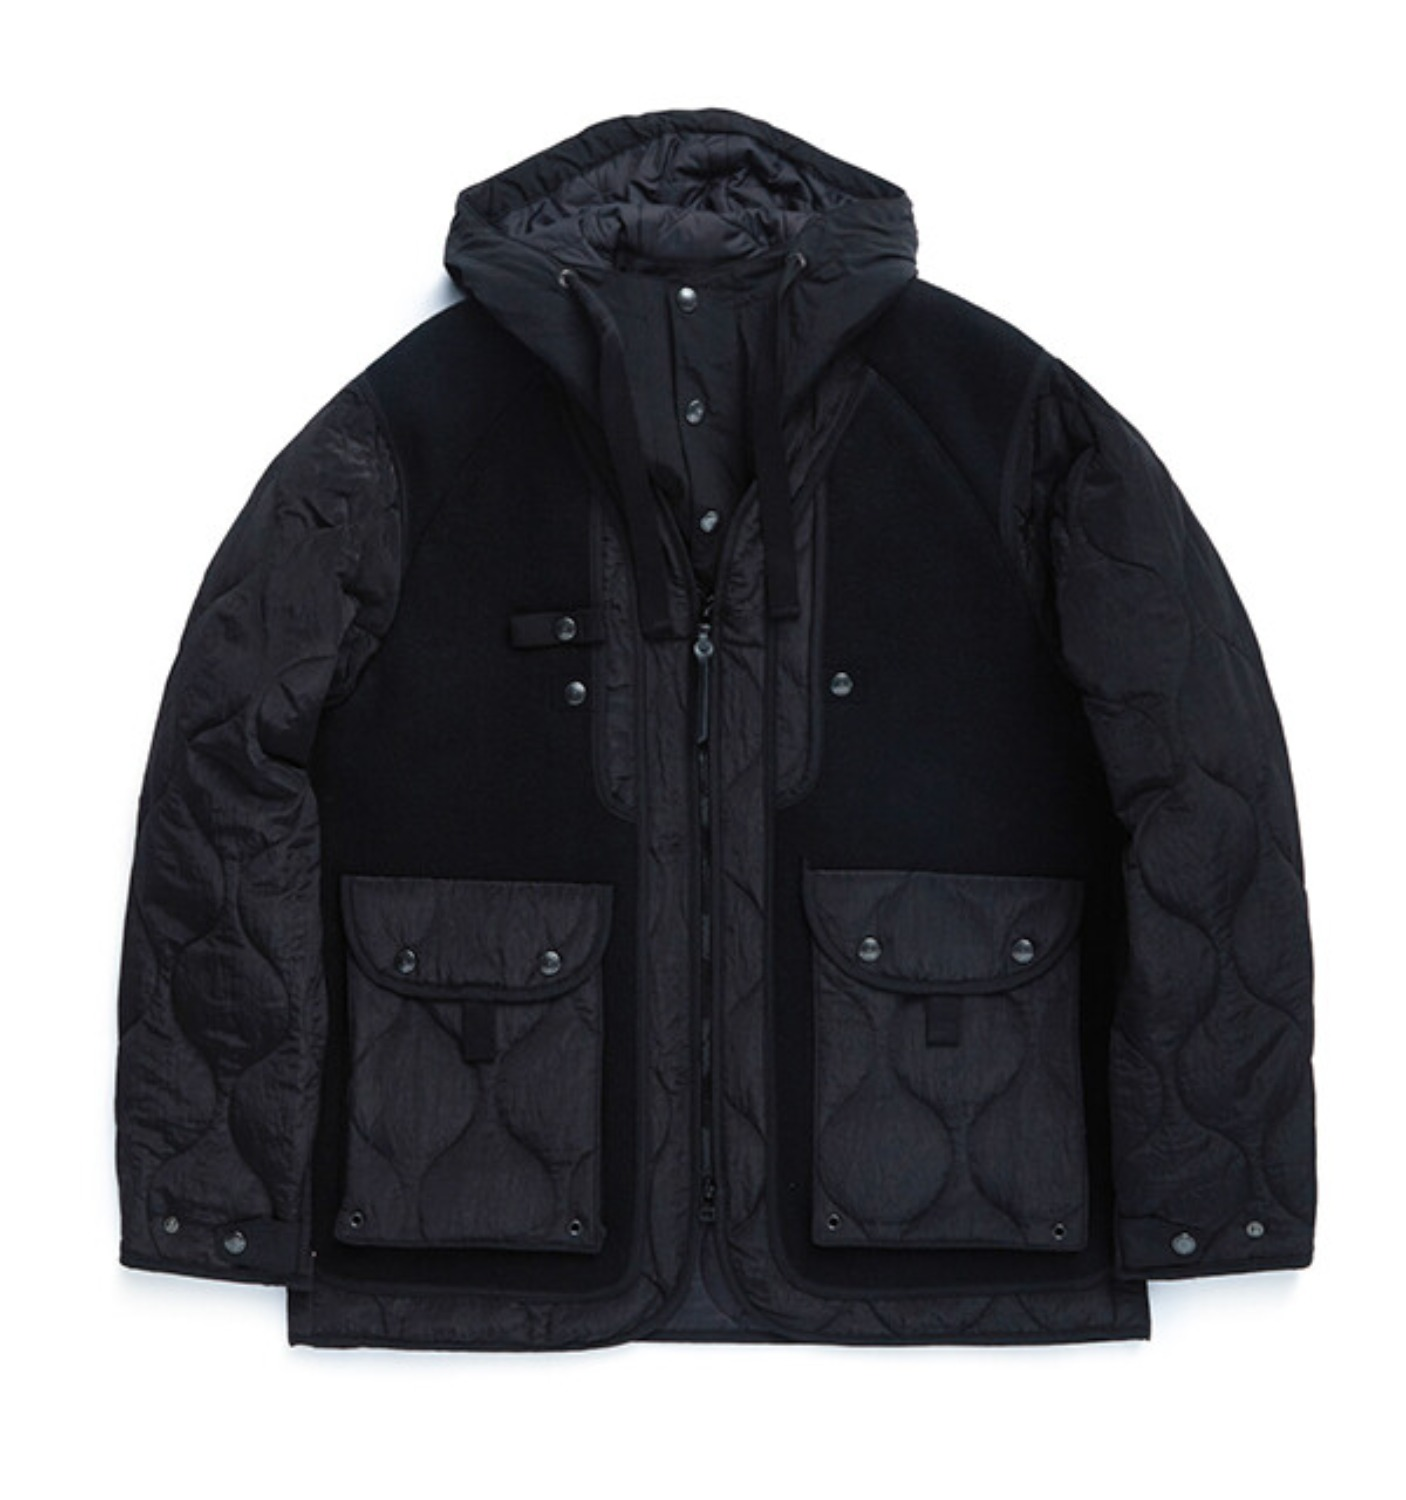 SHERPA PARKA BLACK HEAVY MELTON